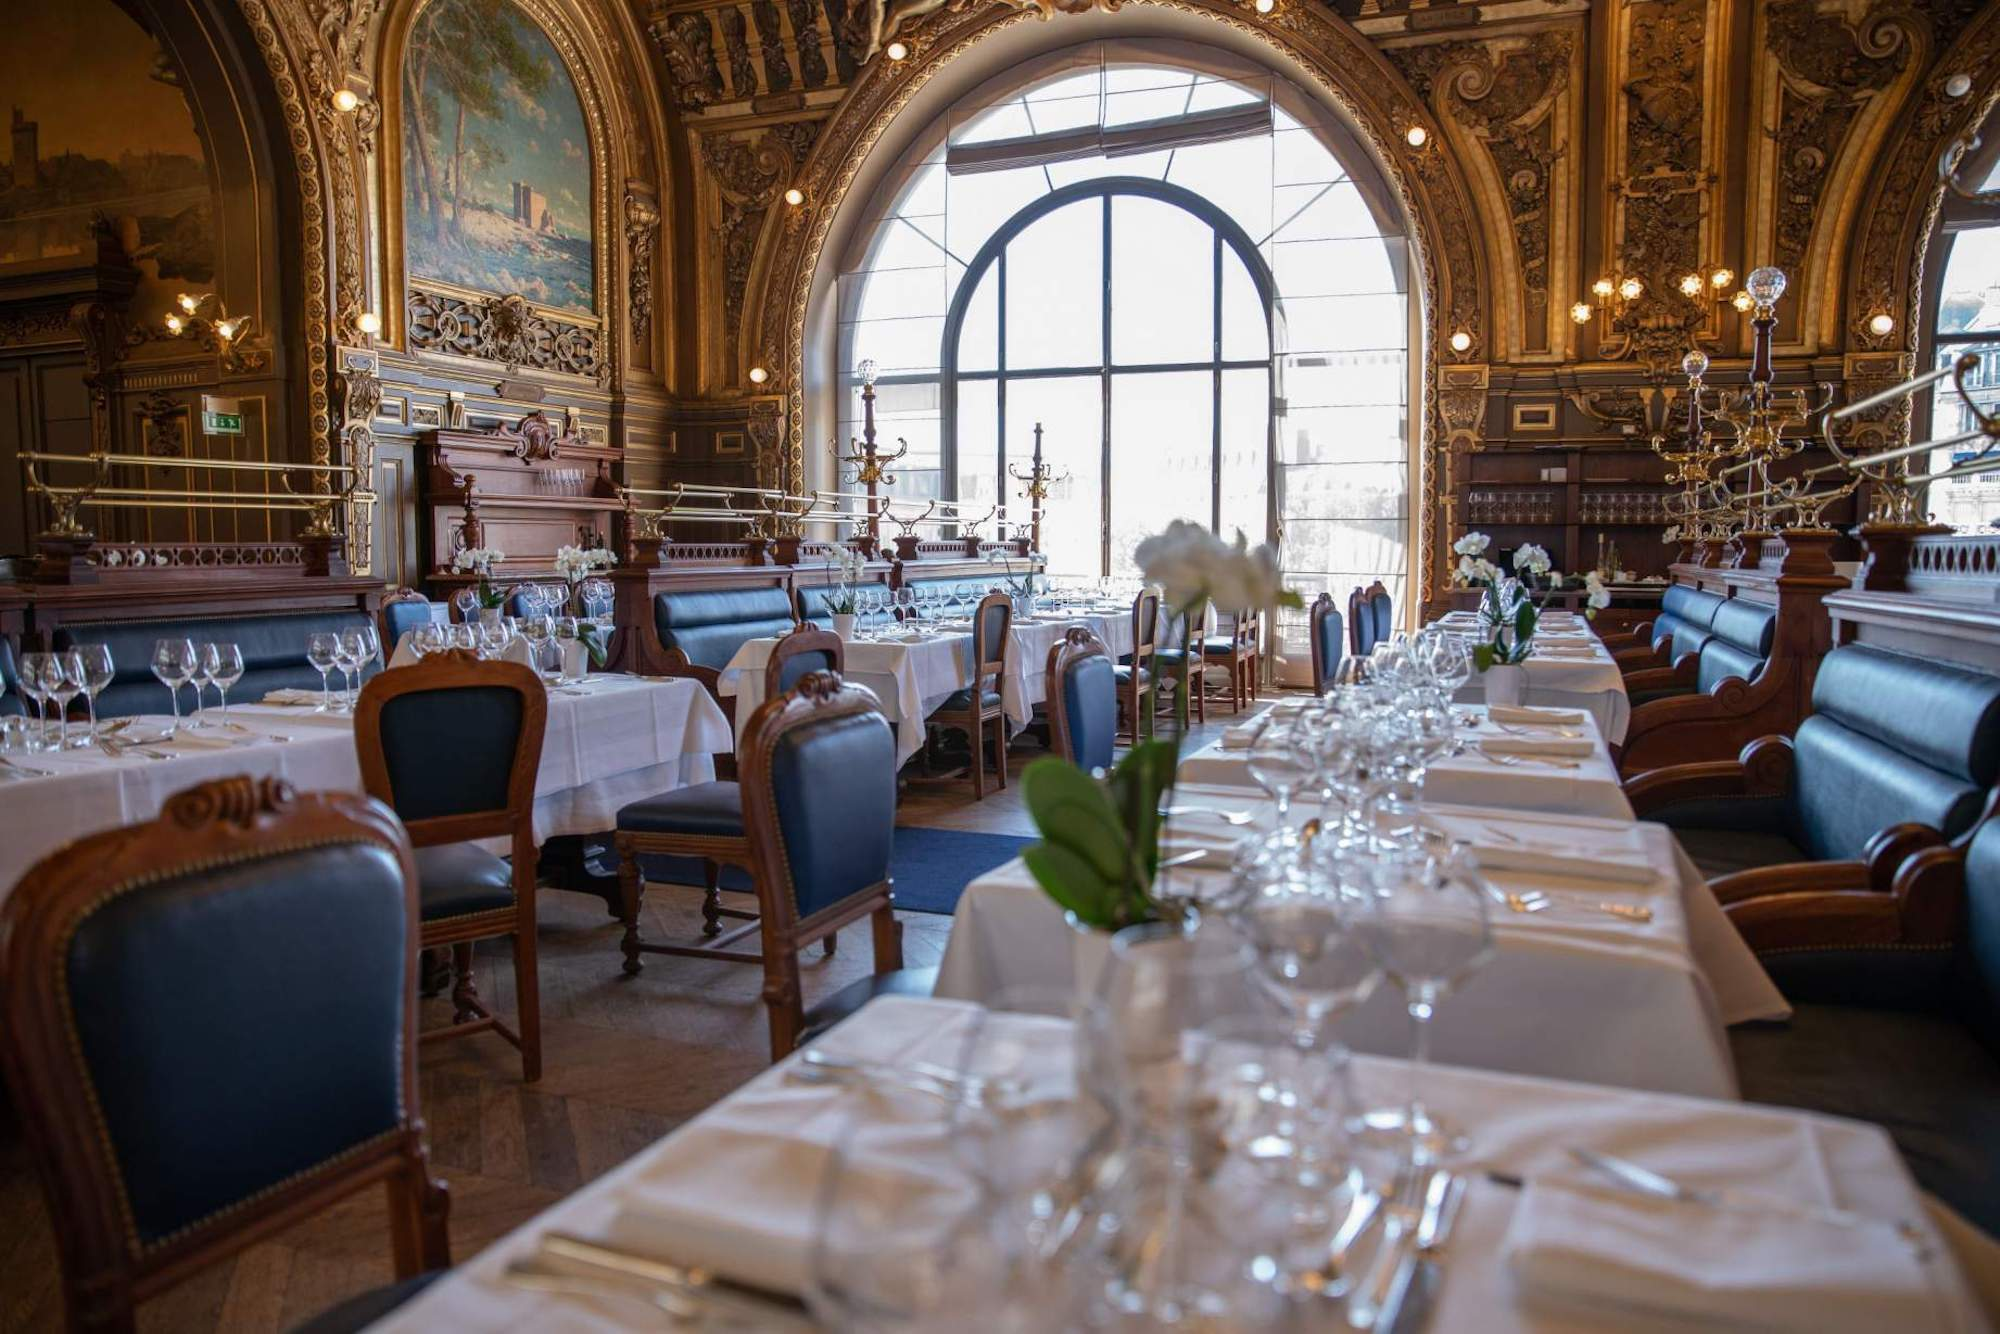 The opulent interior of the restaurant Le Train Bleu in Paris, tables covered in white tablecloths with white serviettes and wine glasses, blue upholstered seats, the walls have painted frescoes and carved gold detailing.